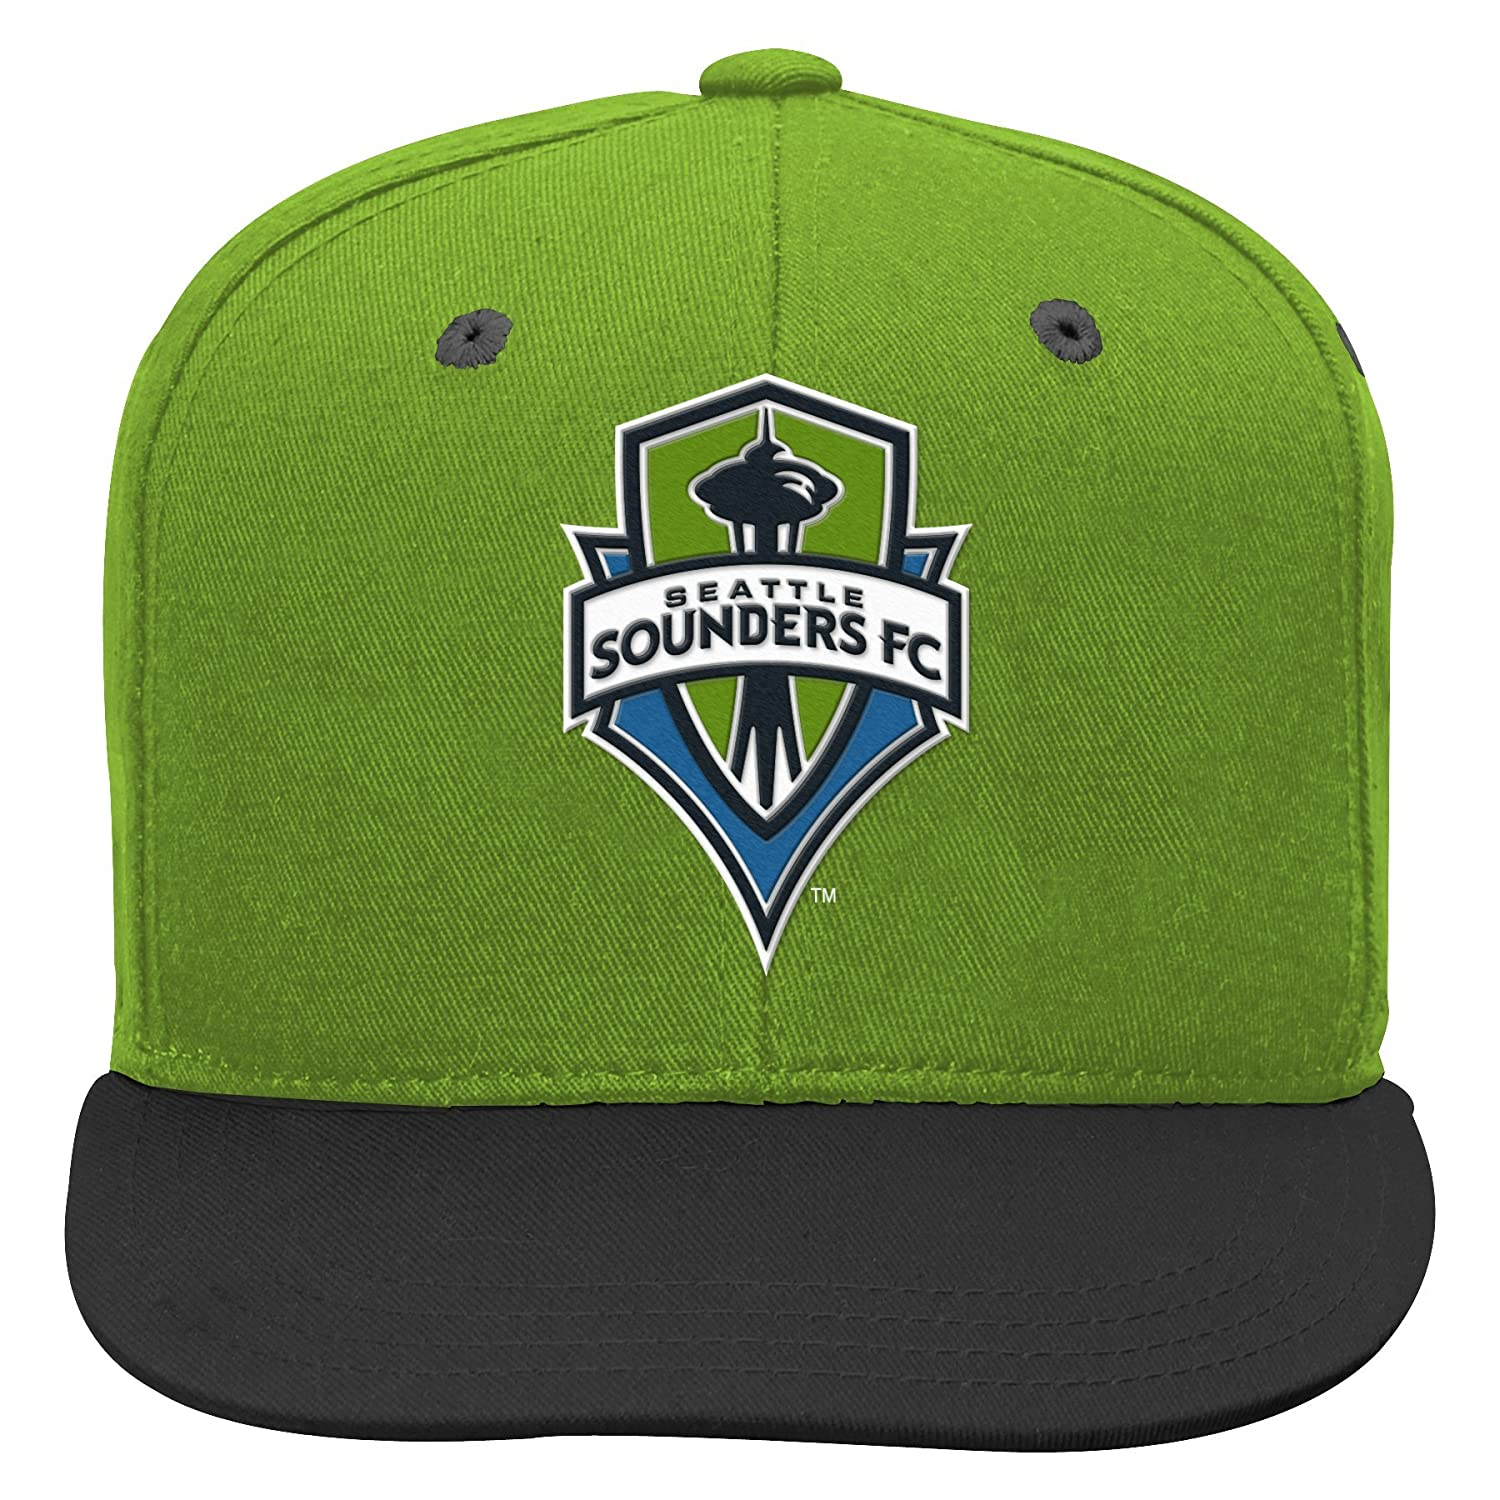 Youth One Size MLS Seattle Sounders FC 4-7 Outerstuff Flat Visor Snapback Green